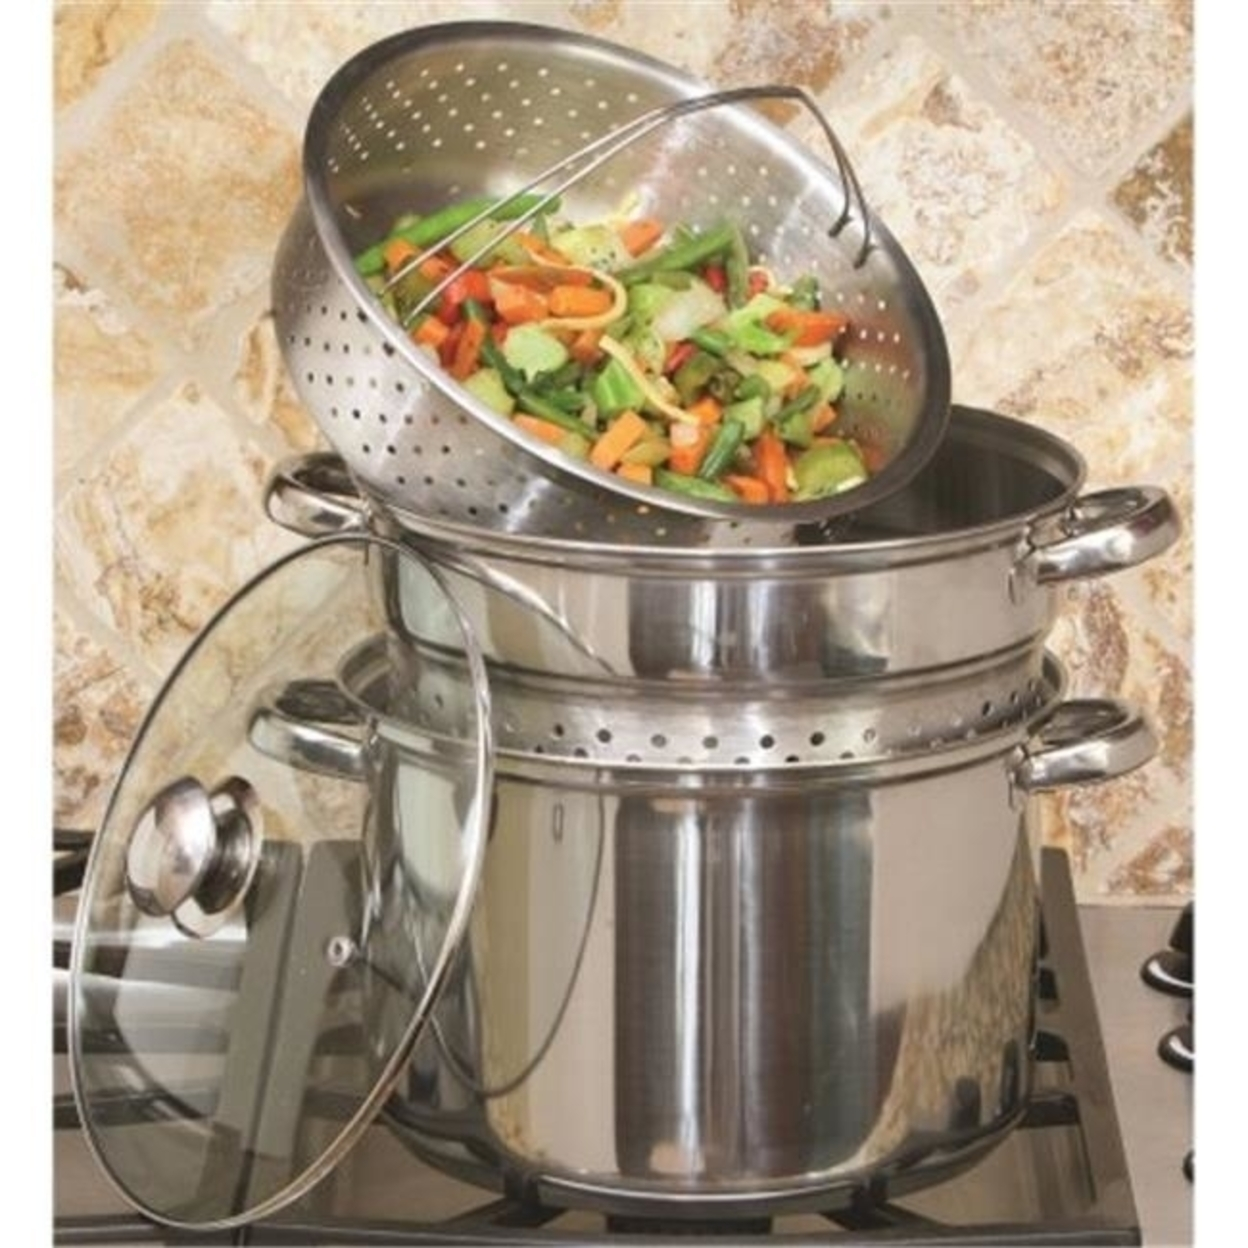 Cookpro 512 8 qt. Stainless Steel Multi Cooker Silver - 4 Piece 5a3d8a3ae2246127df28cc01